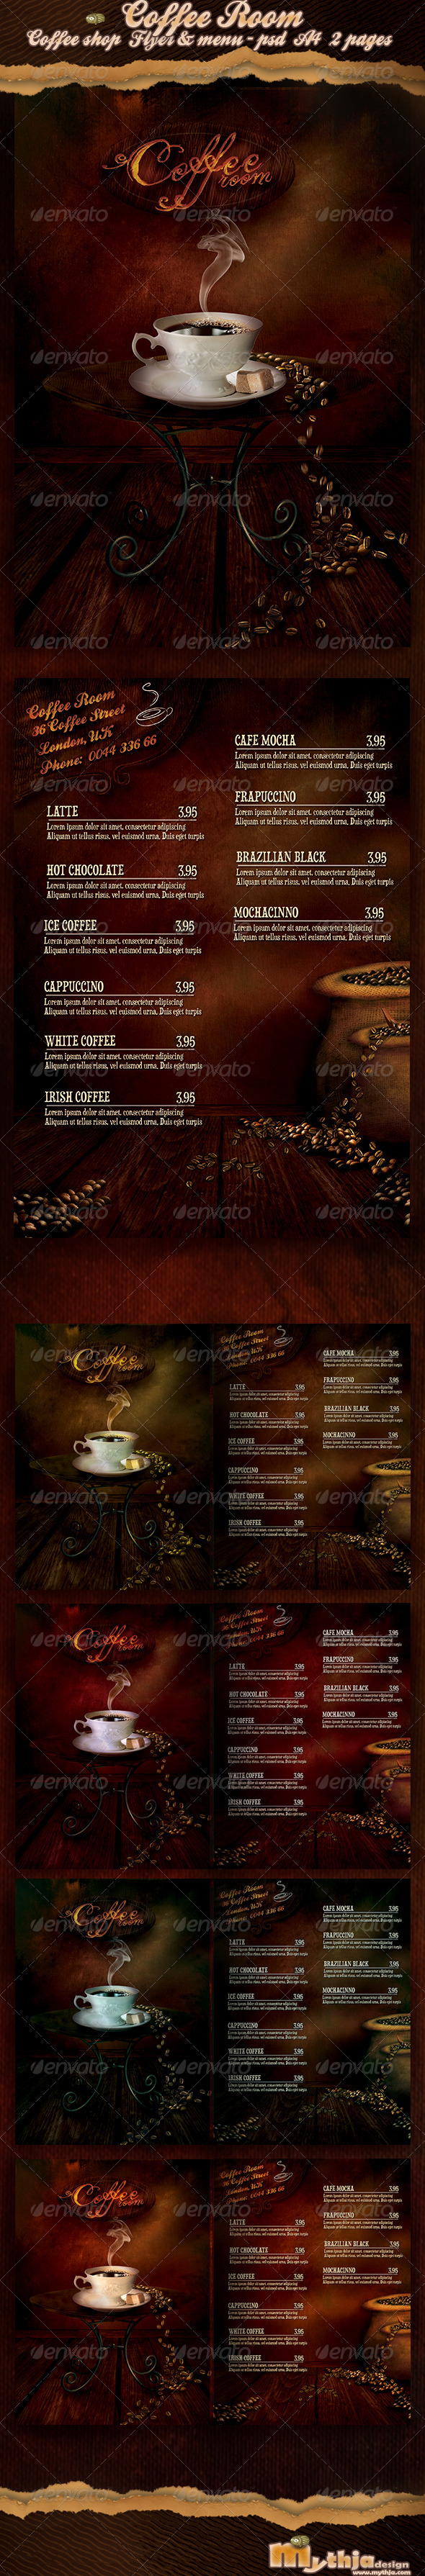 GraphicRiver Coffee Room Coffee Shop Flyer & Menu 3777315